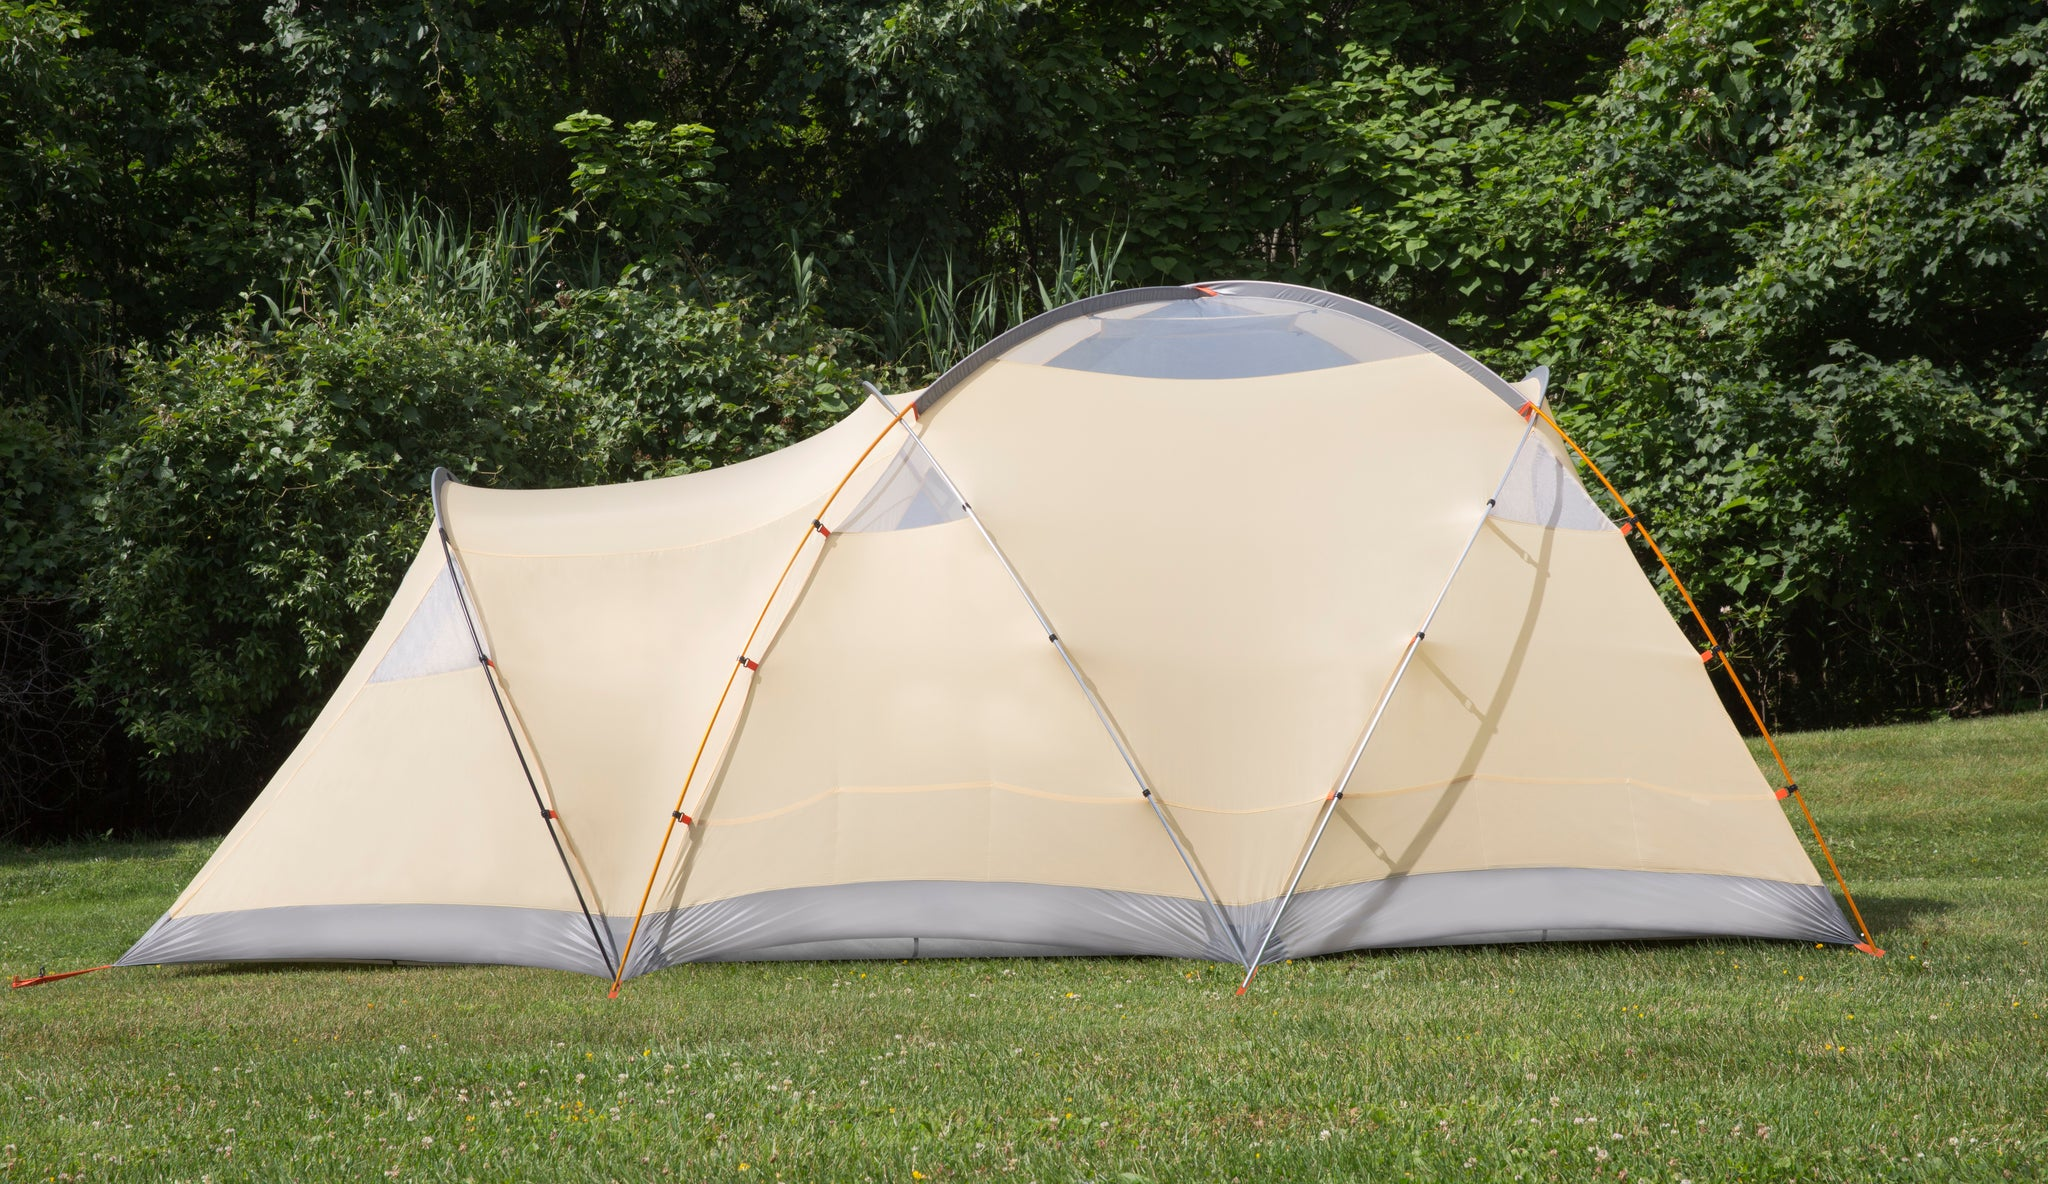 ... 8-Person Compact Backcountry Tent ... : back country tents - memphite.com